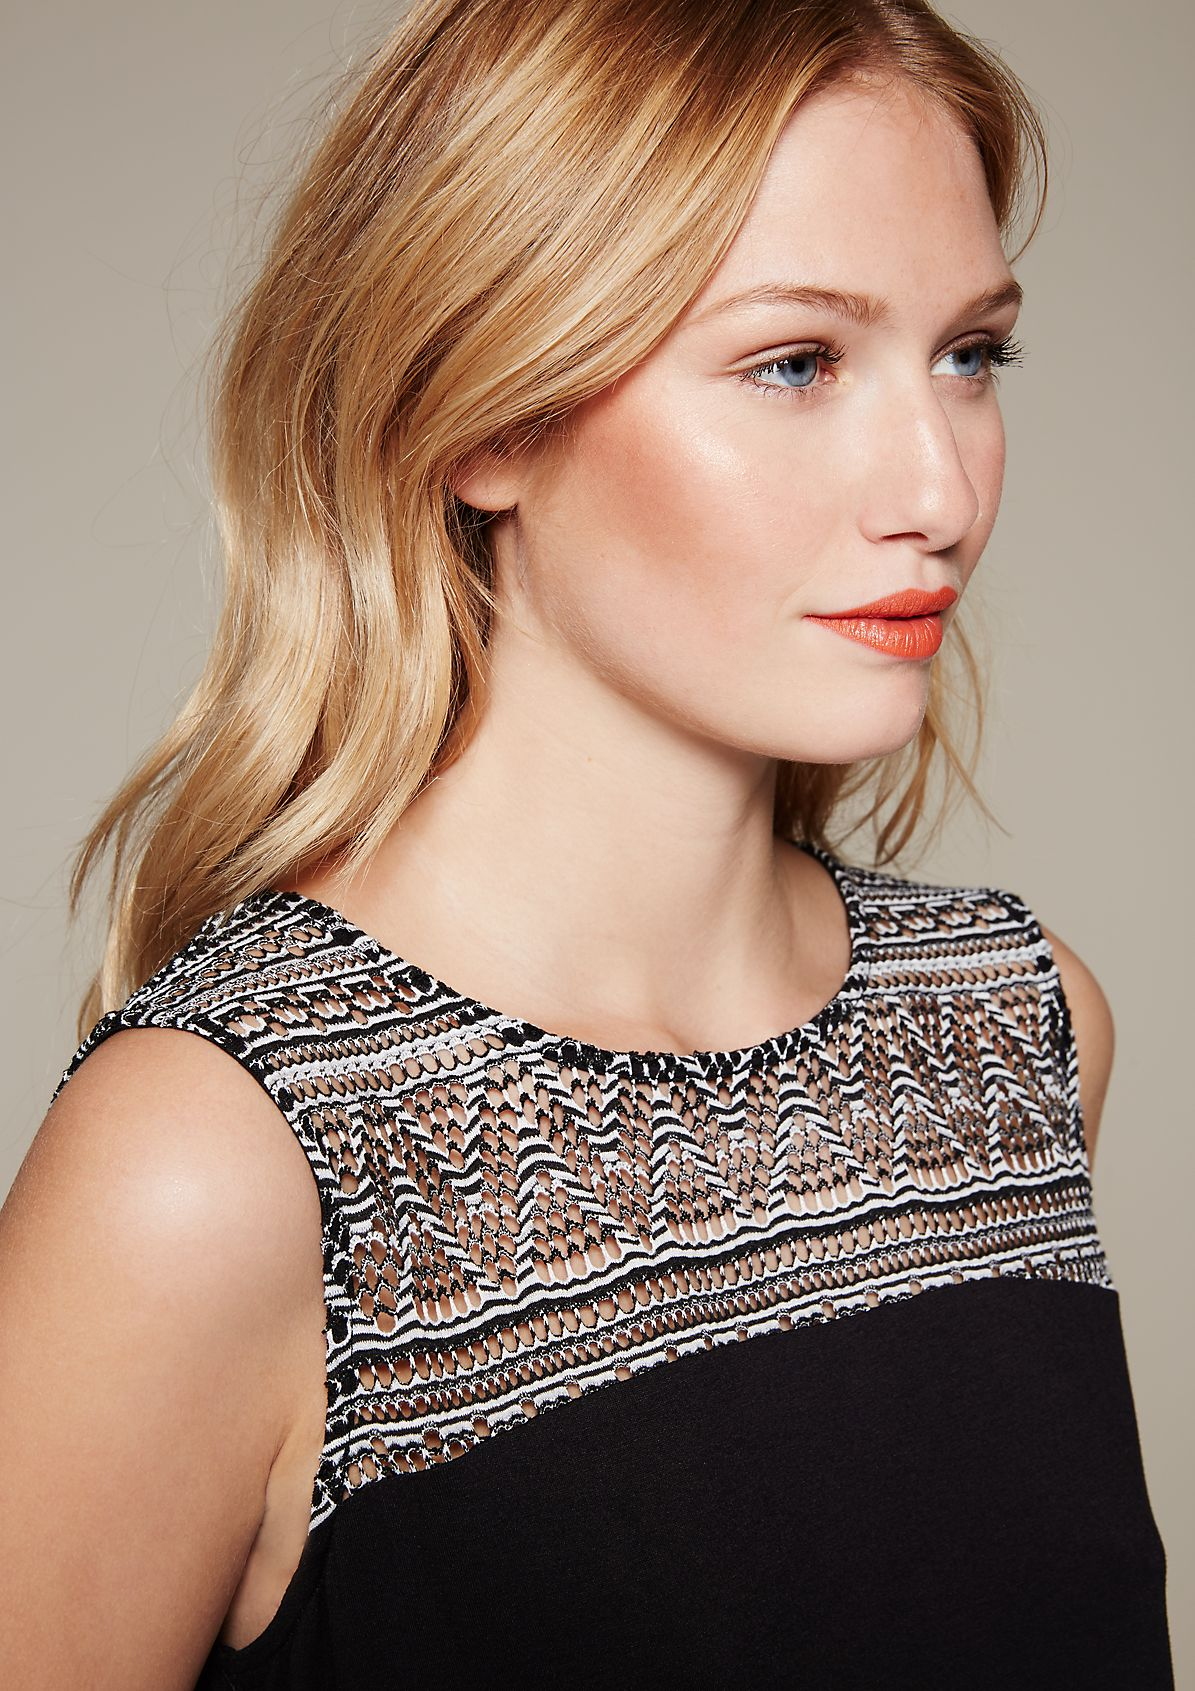 Beautiful summer top with a sophisticated openwork pattern from s.Oliver